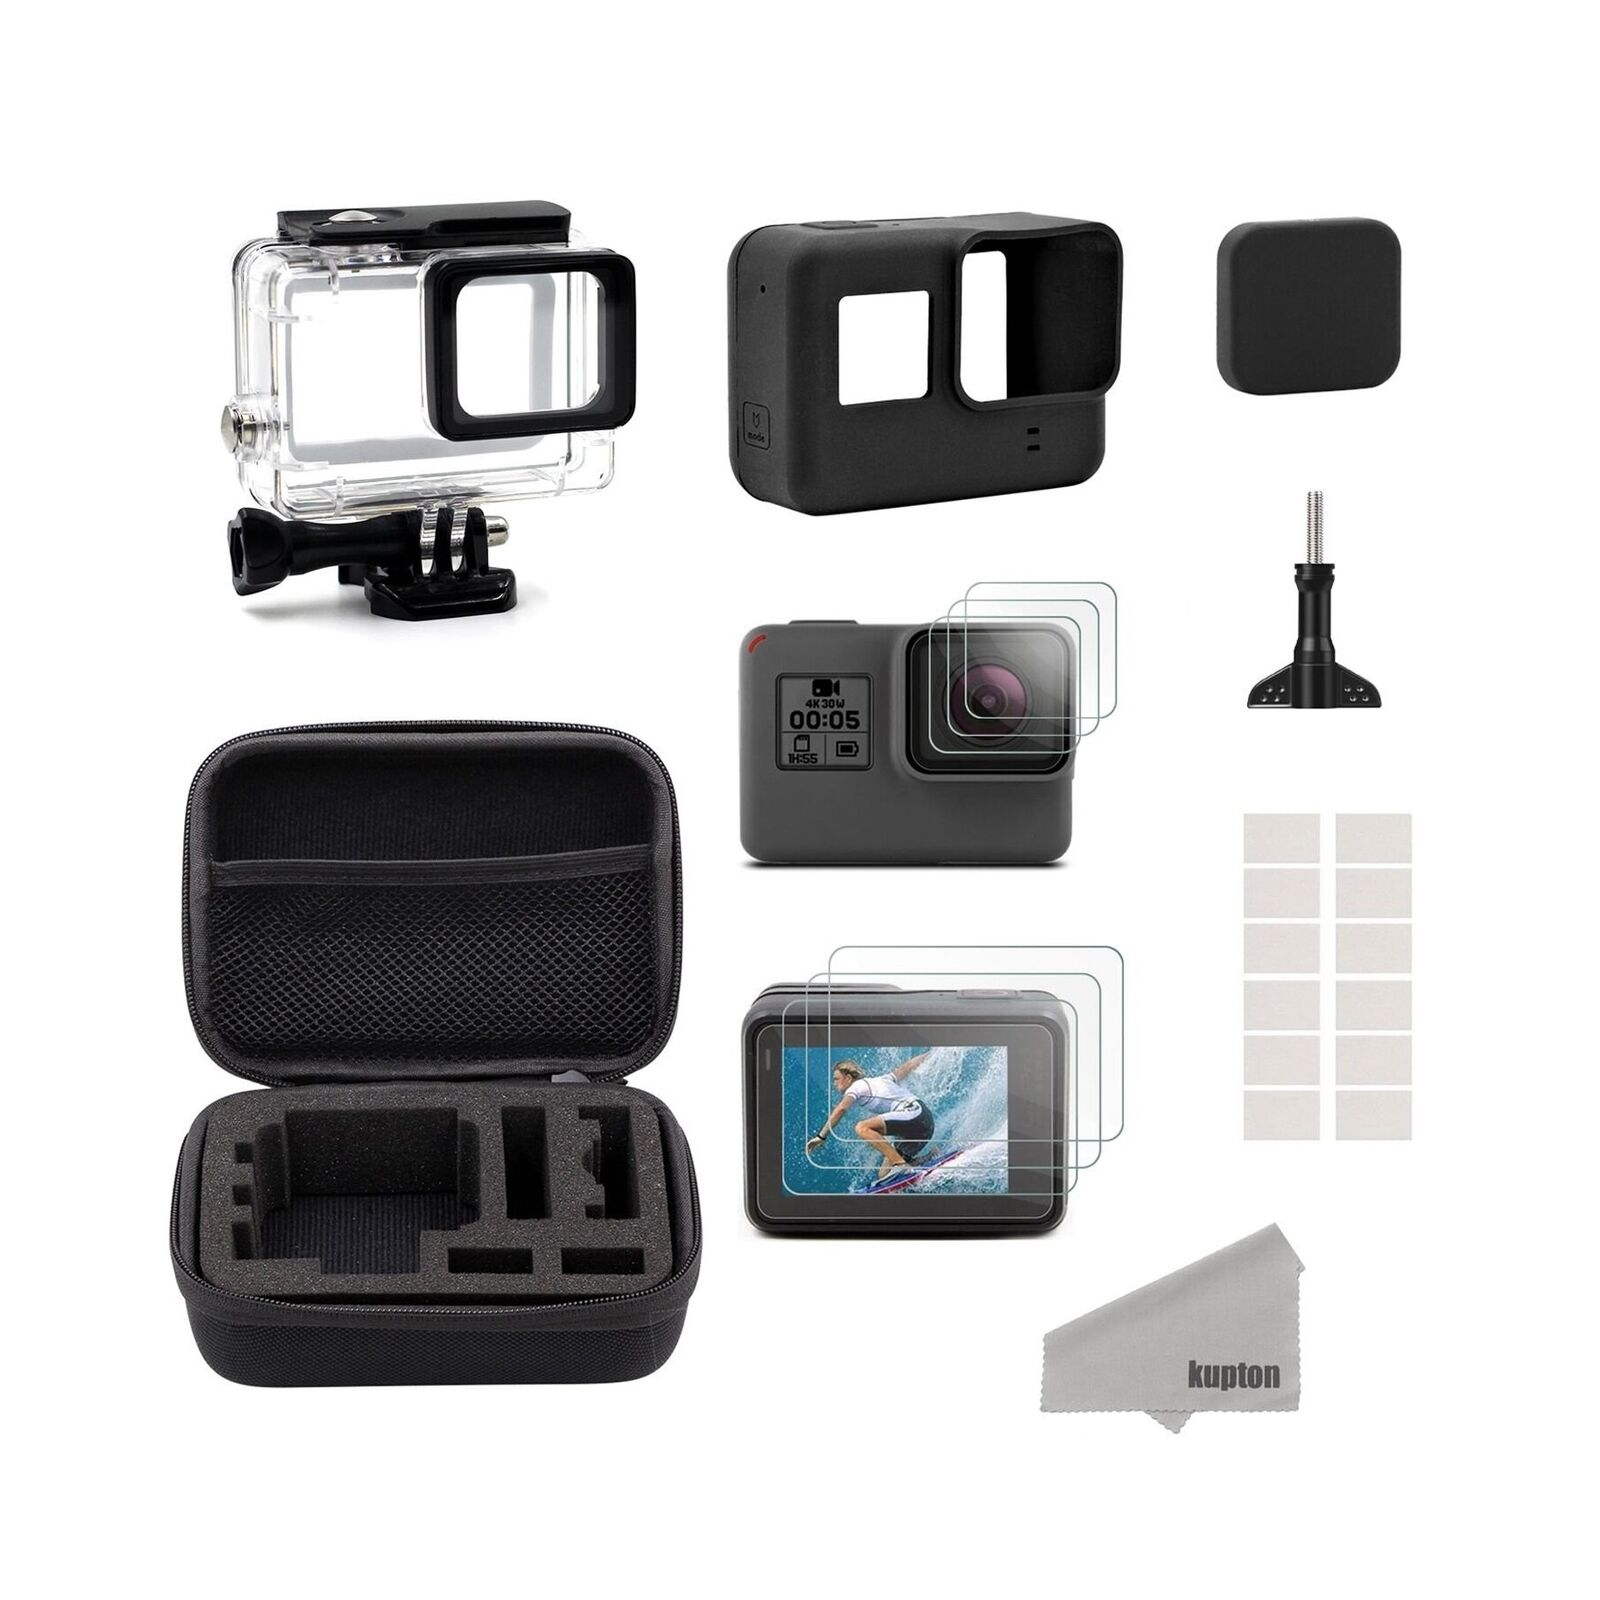 Kupton Accessories For Gopro Hero 2018 6 5 Black Starter Kit Acc Remote 20 1 Of 8free Shipping